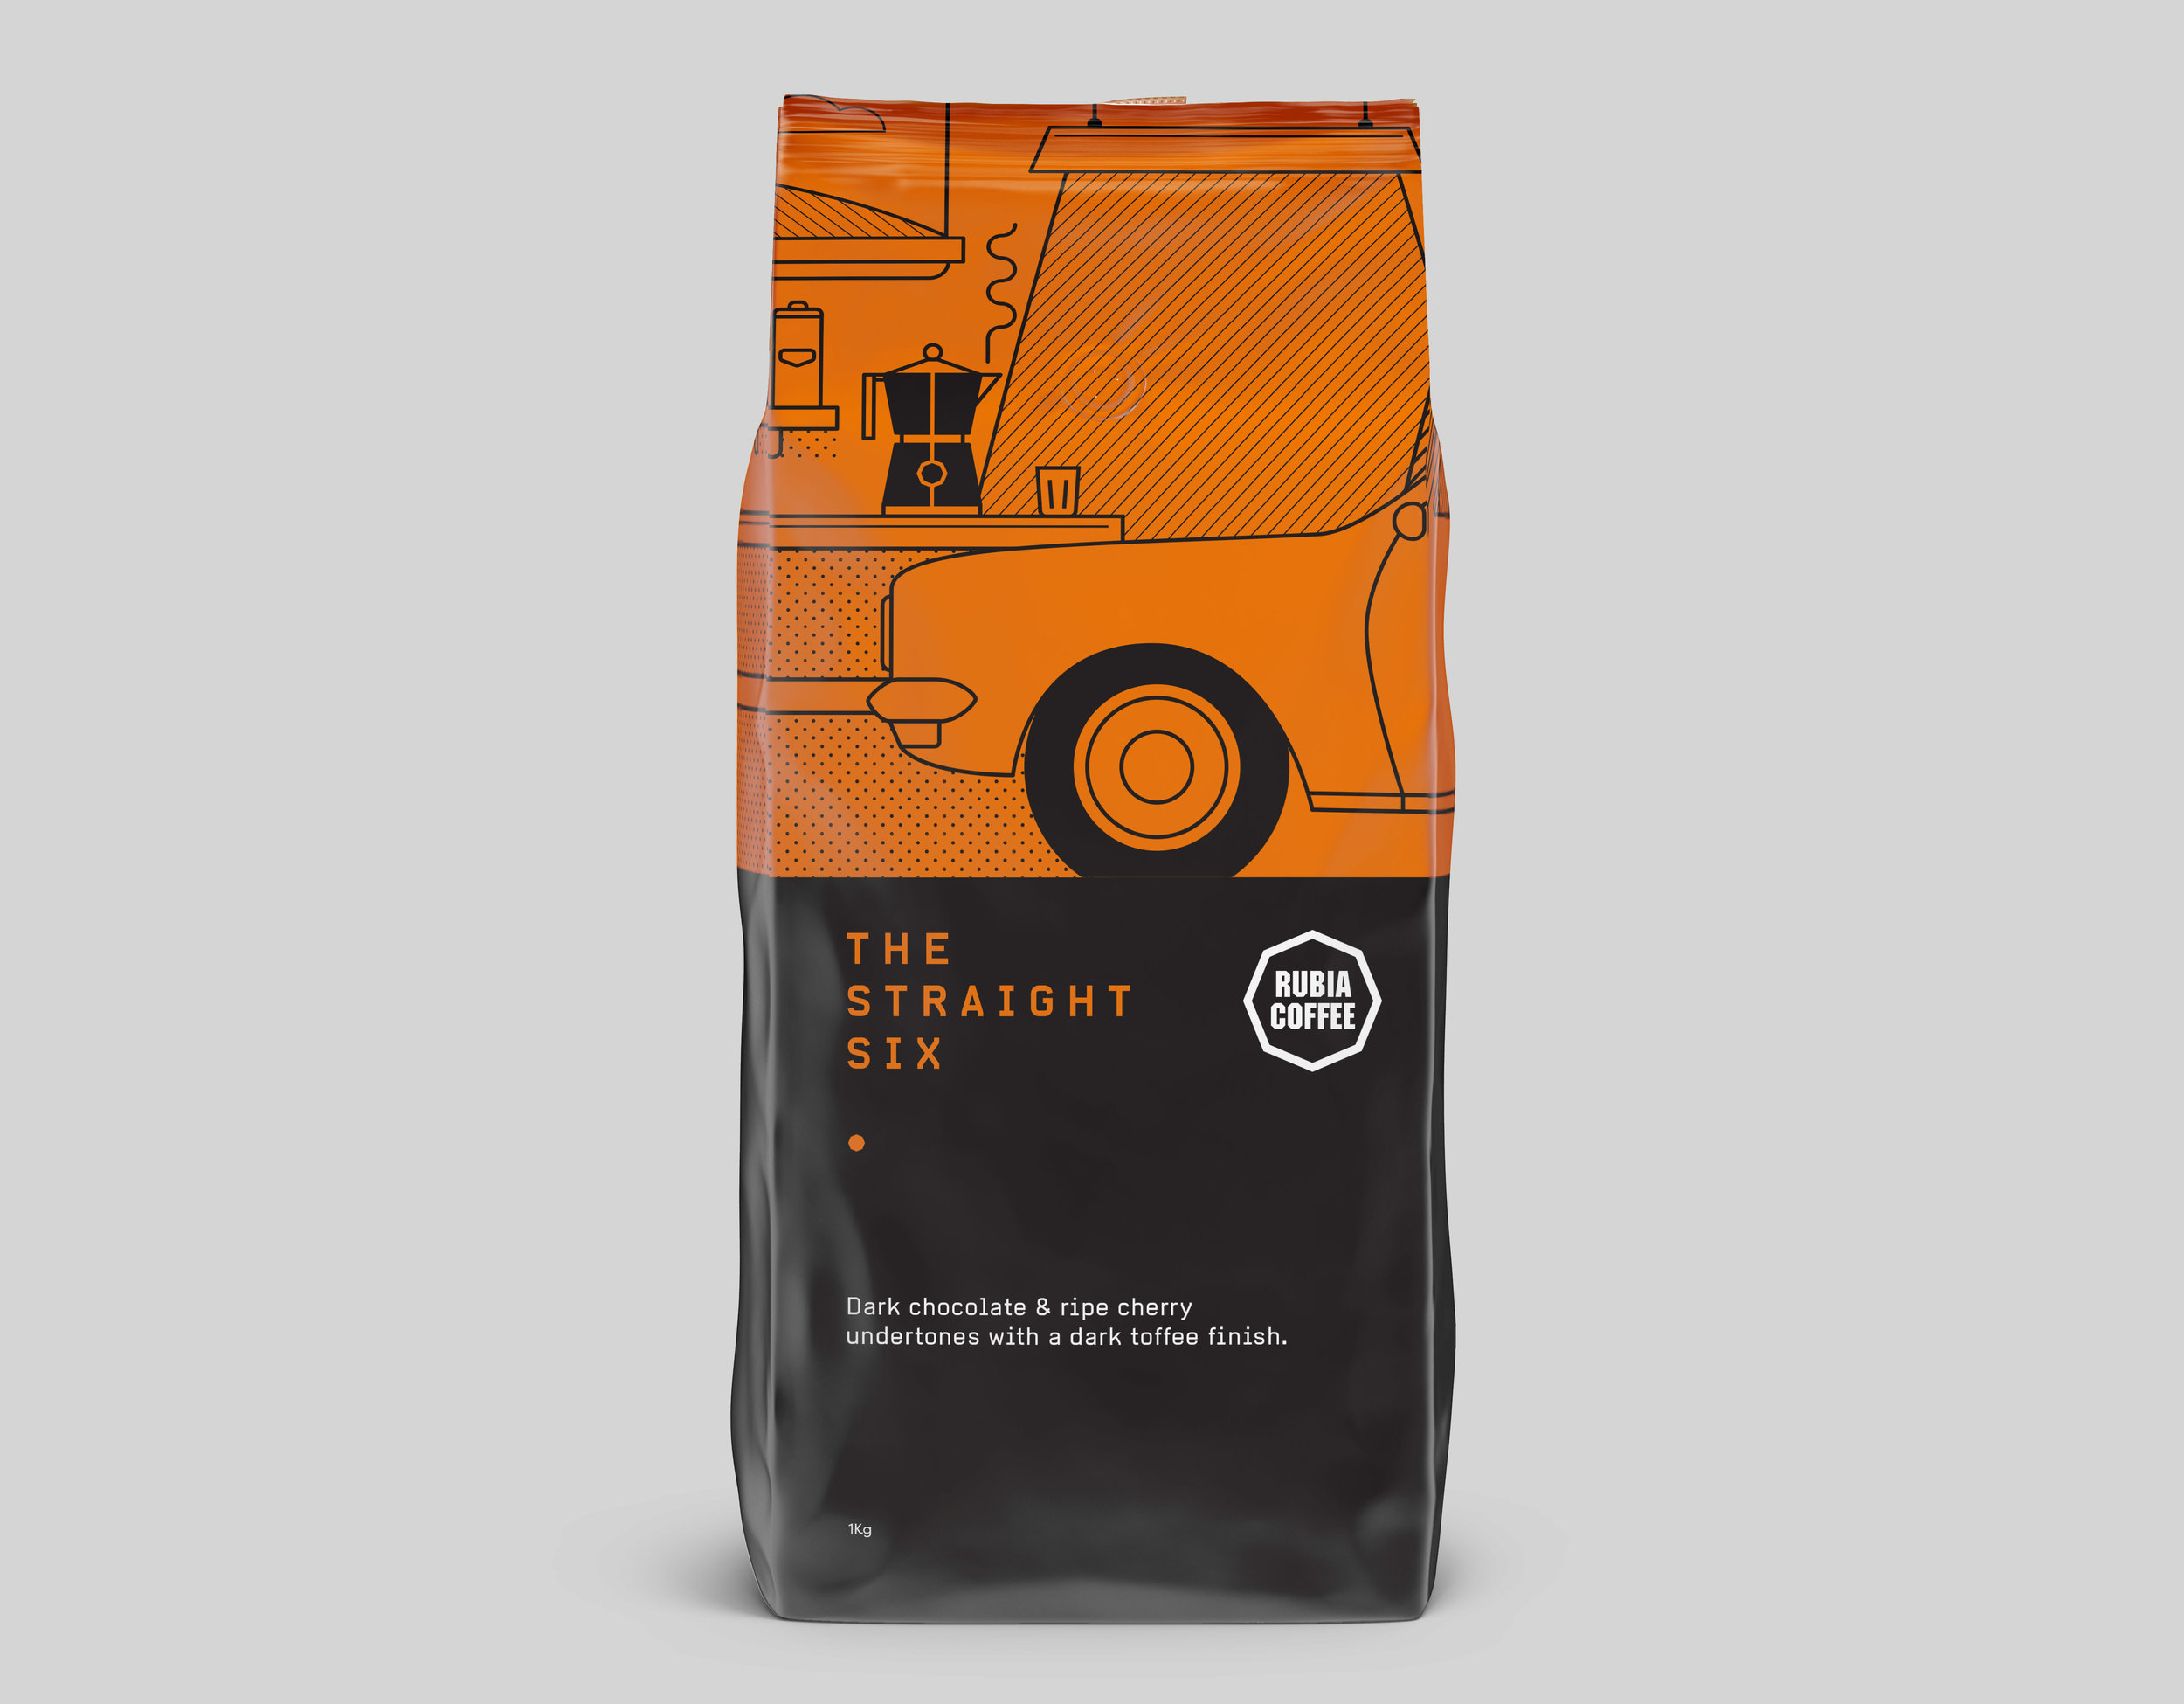 Rubia Coffee The Straight Six packaging and illustration design Graphic design melbourne, branding design melbourne, branding design, packaging design melbourne, design studio melbourne, graphic design